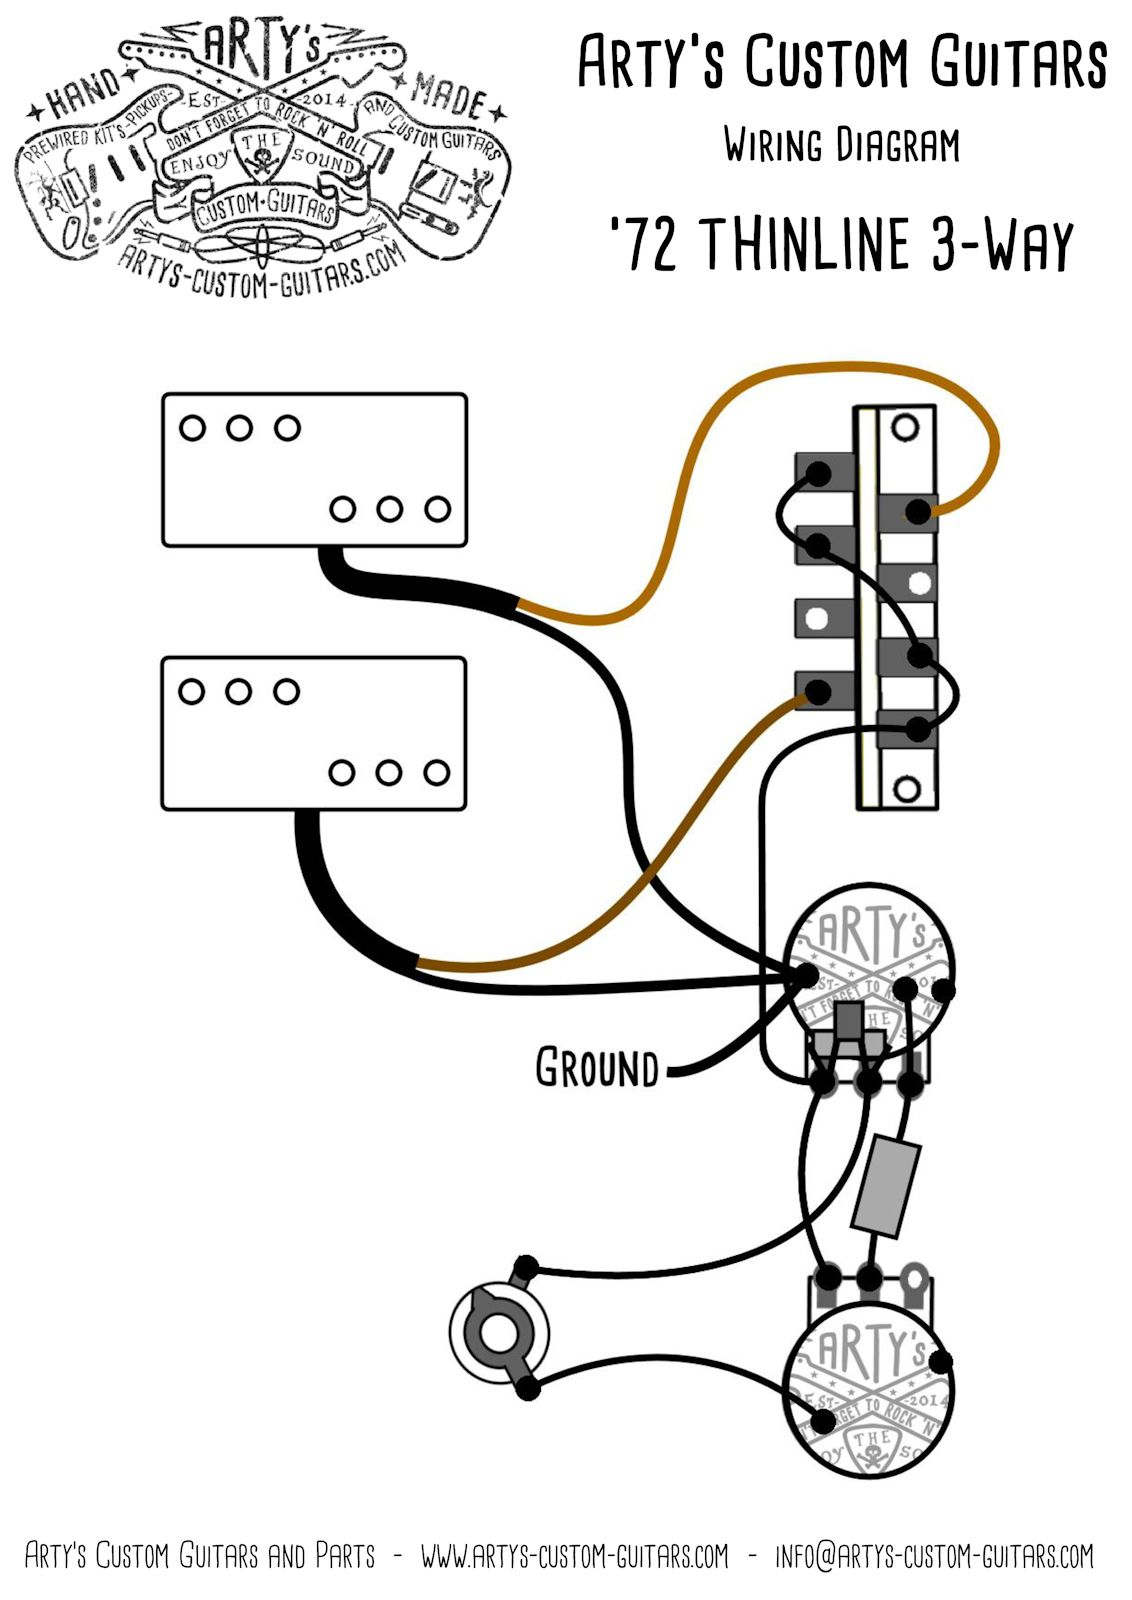 Tele Wiring Harness Diagram | Wiring Liry on stratocaster wiring diagram, soloist wiring diagram, taylor wiring diagram, gibson wiring diagram, electric wiring diagram, 12-string wiring diagram, broadcaster wiring diagram, telecaster template, hamer wiring diagram, telecaster control plate, esquire wiring diagram, cyclone wiring diagram, fender wiring diagram, harmony wiring diagram, guitar wiring diagram, dimarzio wiring diagram, humbucker wiring diagram, telecaster four way switch, les paul wiring diagram, mosrite wiring diagram,